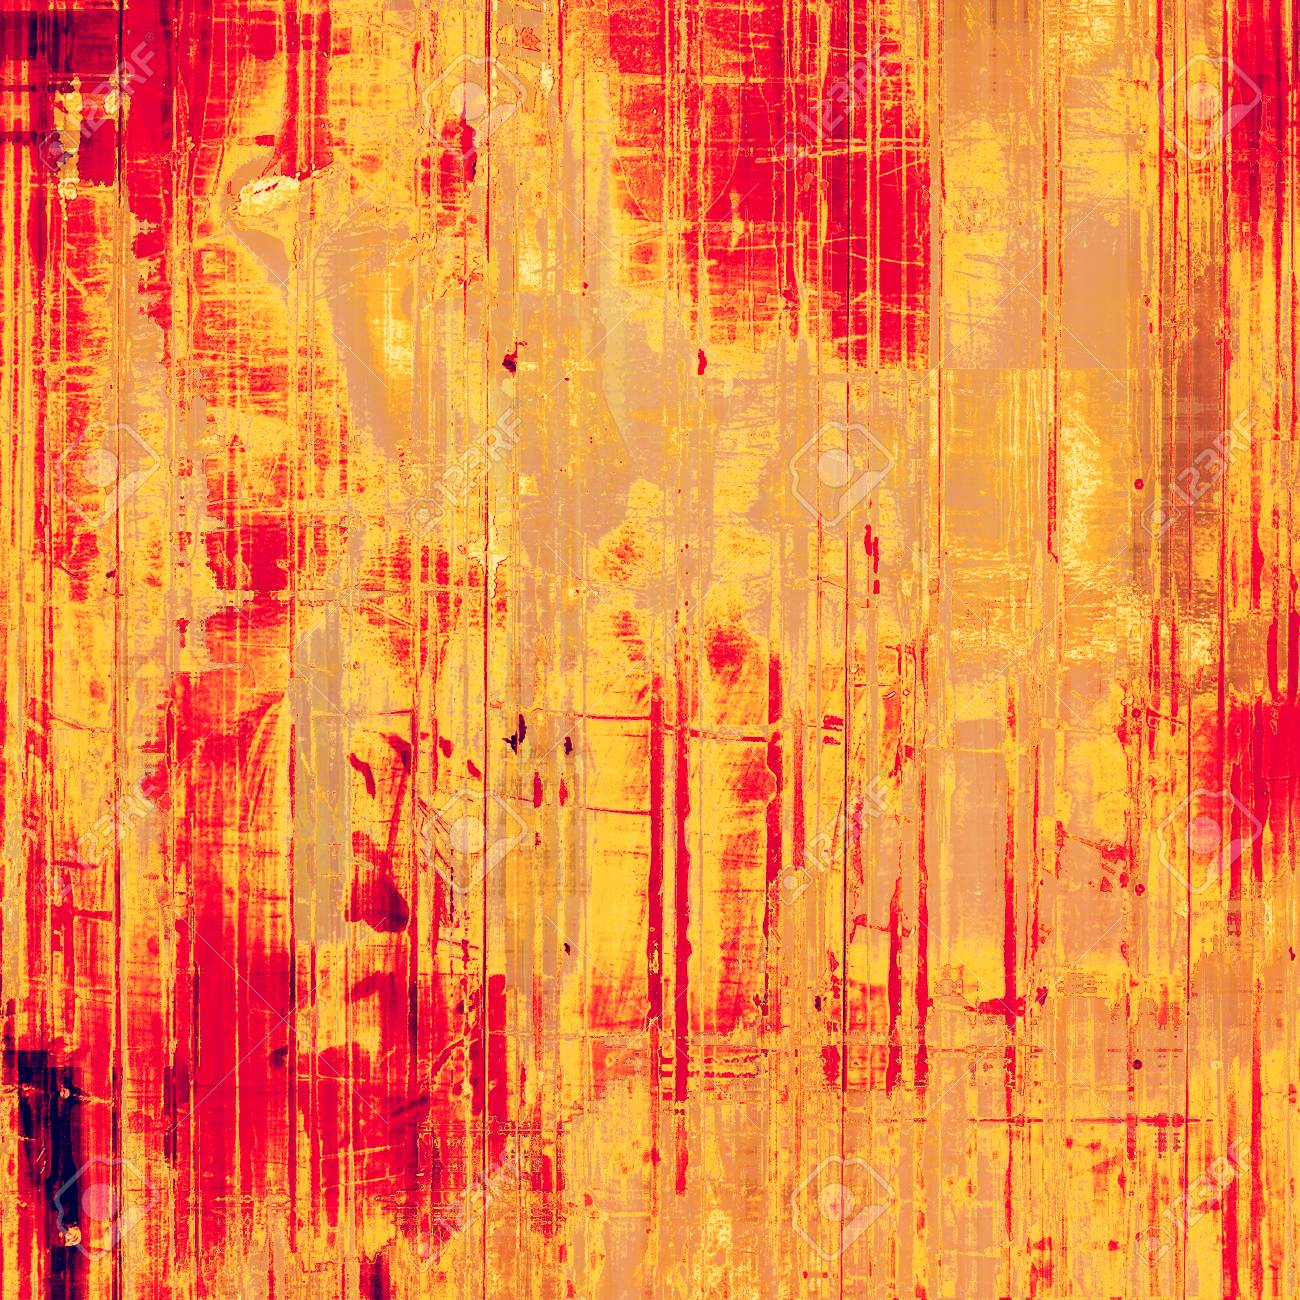 Vintage Texture Ideal For Retro Backgrounds With Yellow Brown Red Orange Patterns